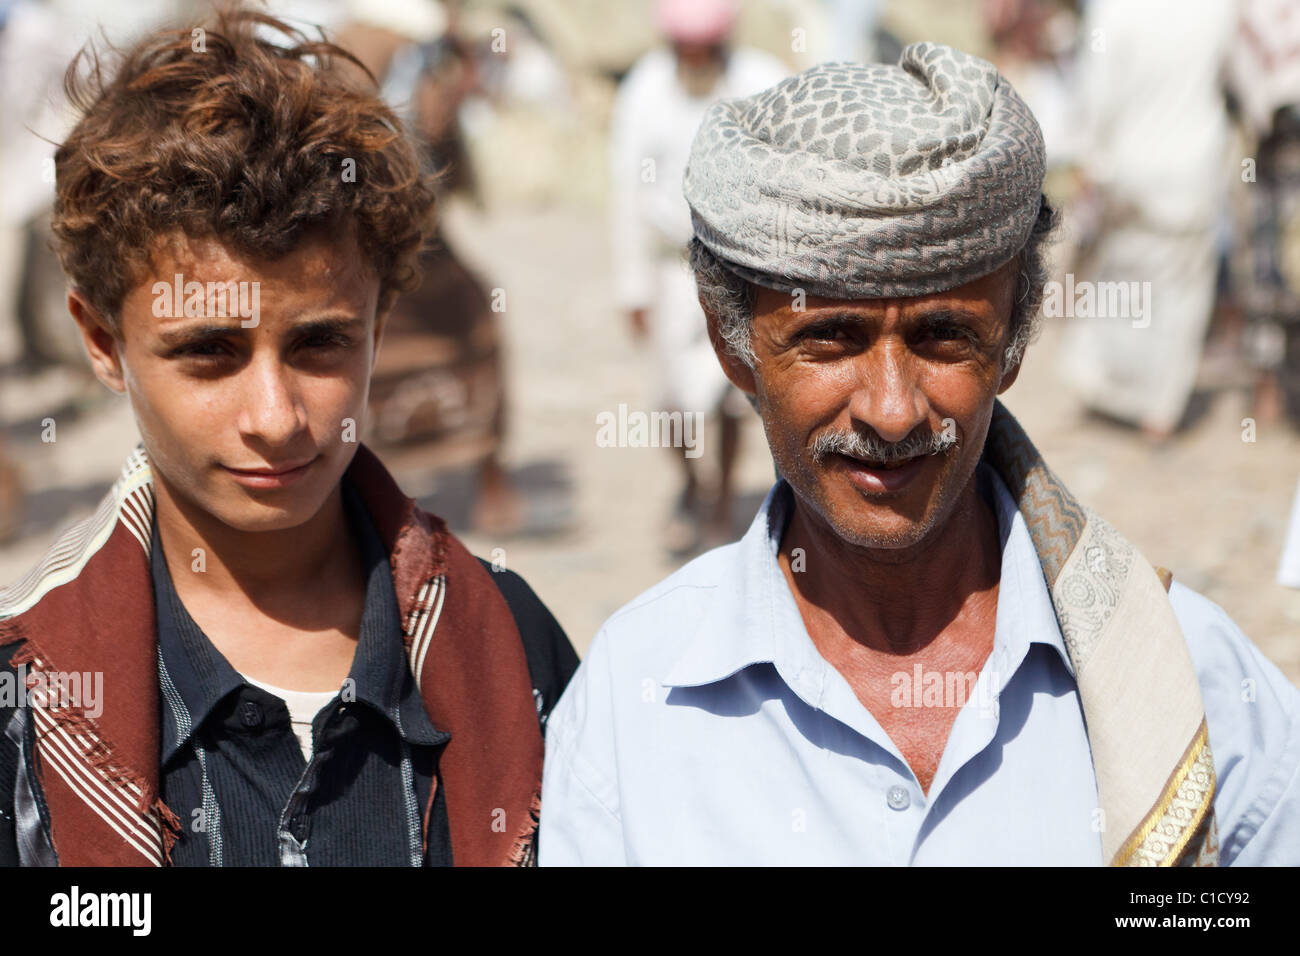 Father and son at Bait Al Faqih Friday Market, Yemen - Stock Image